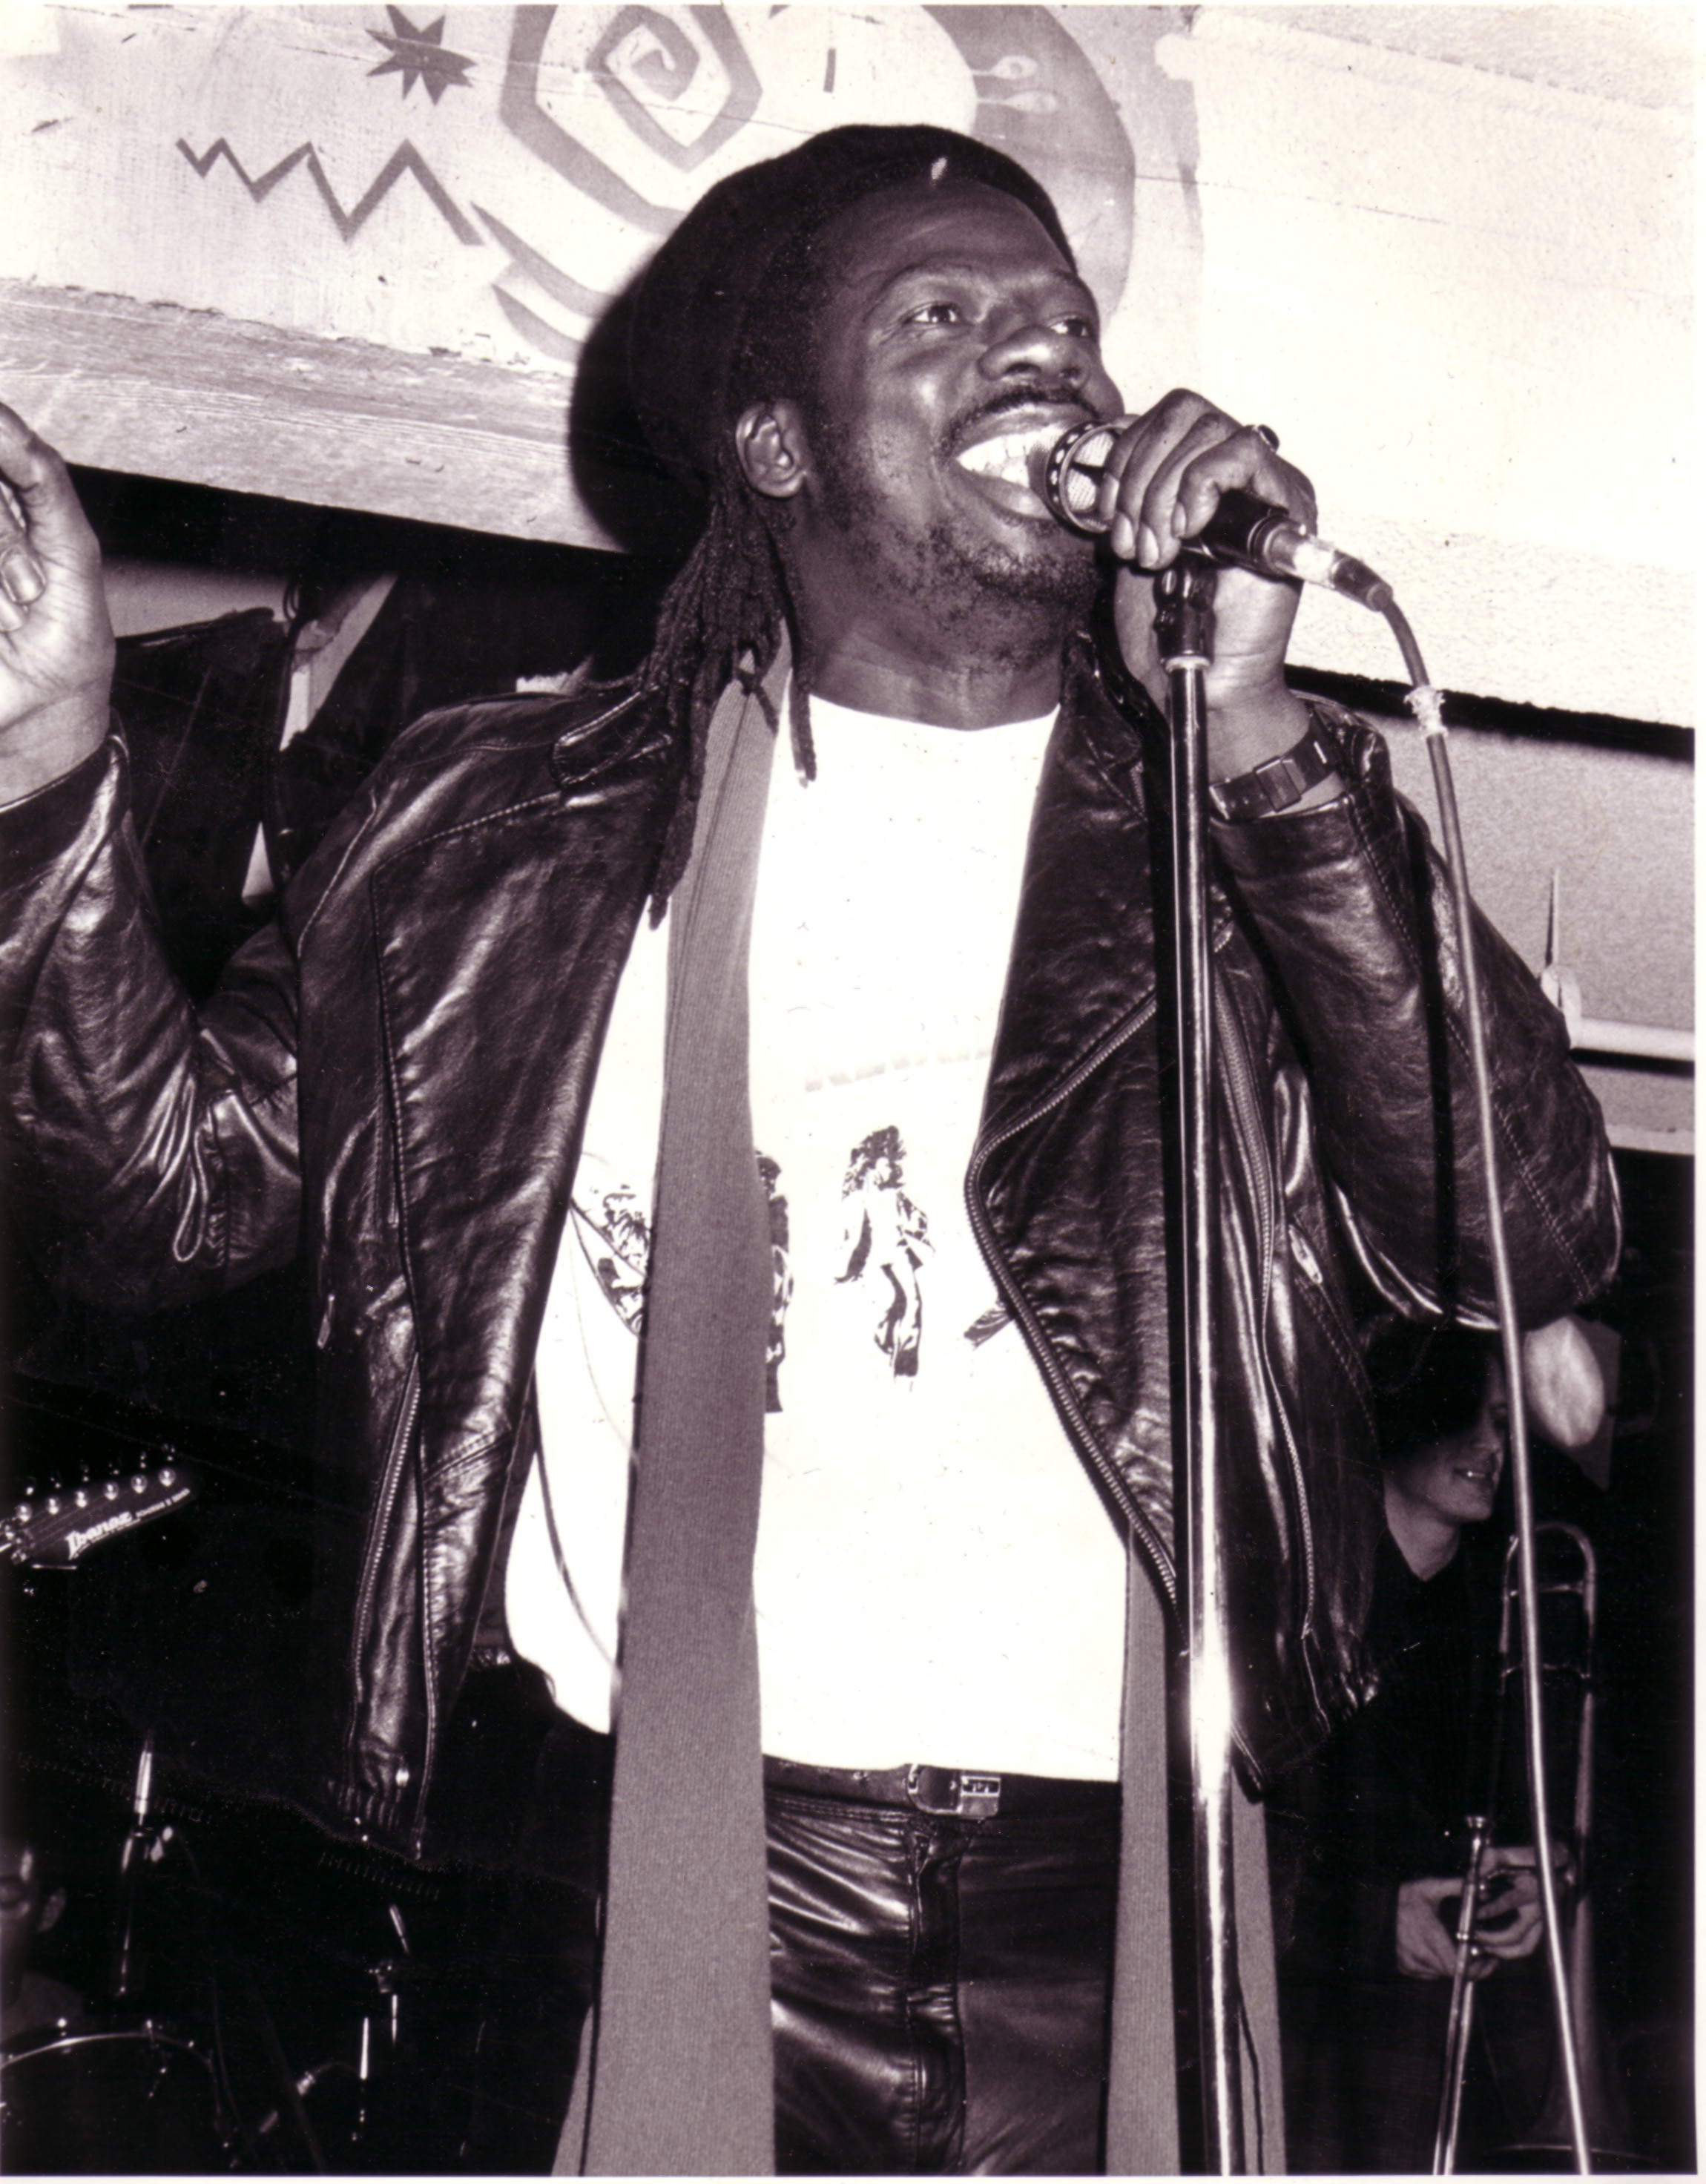 A black and white photo of a man on stage singing while holding a microphone